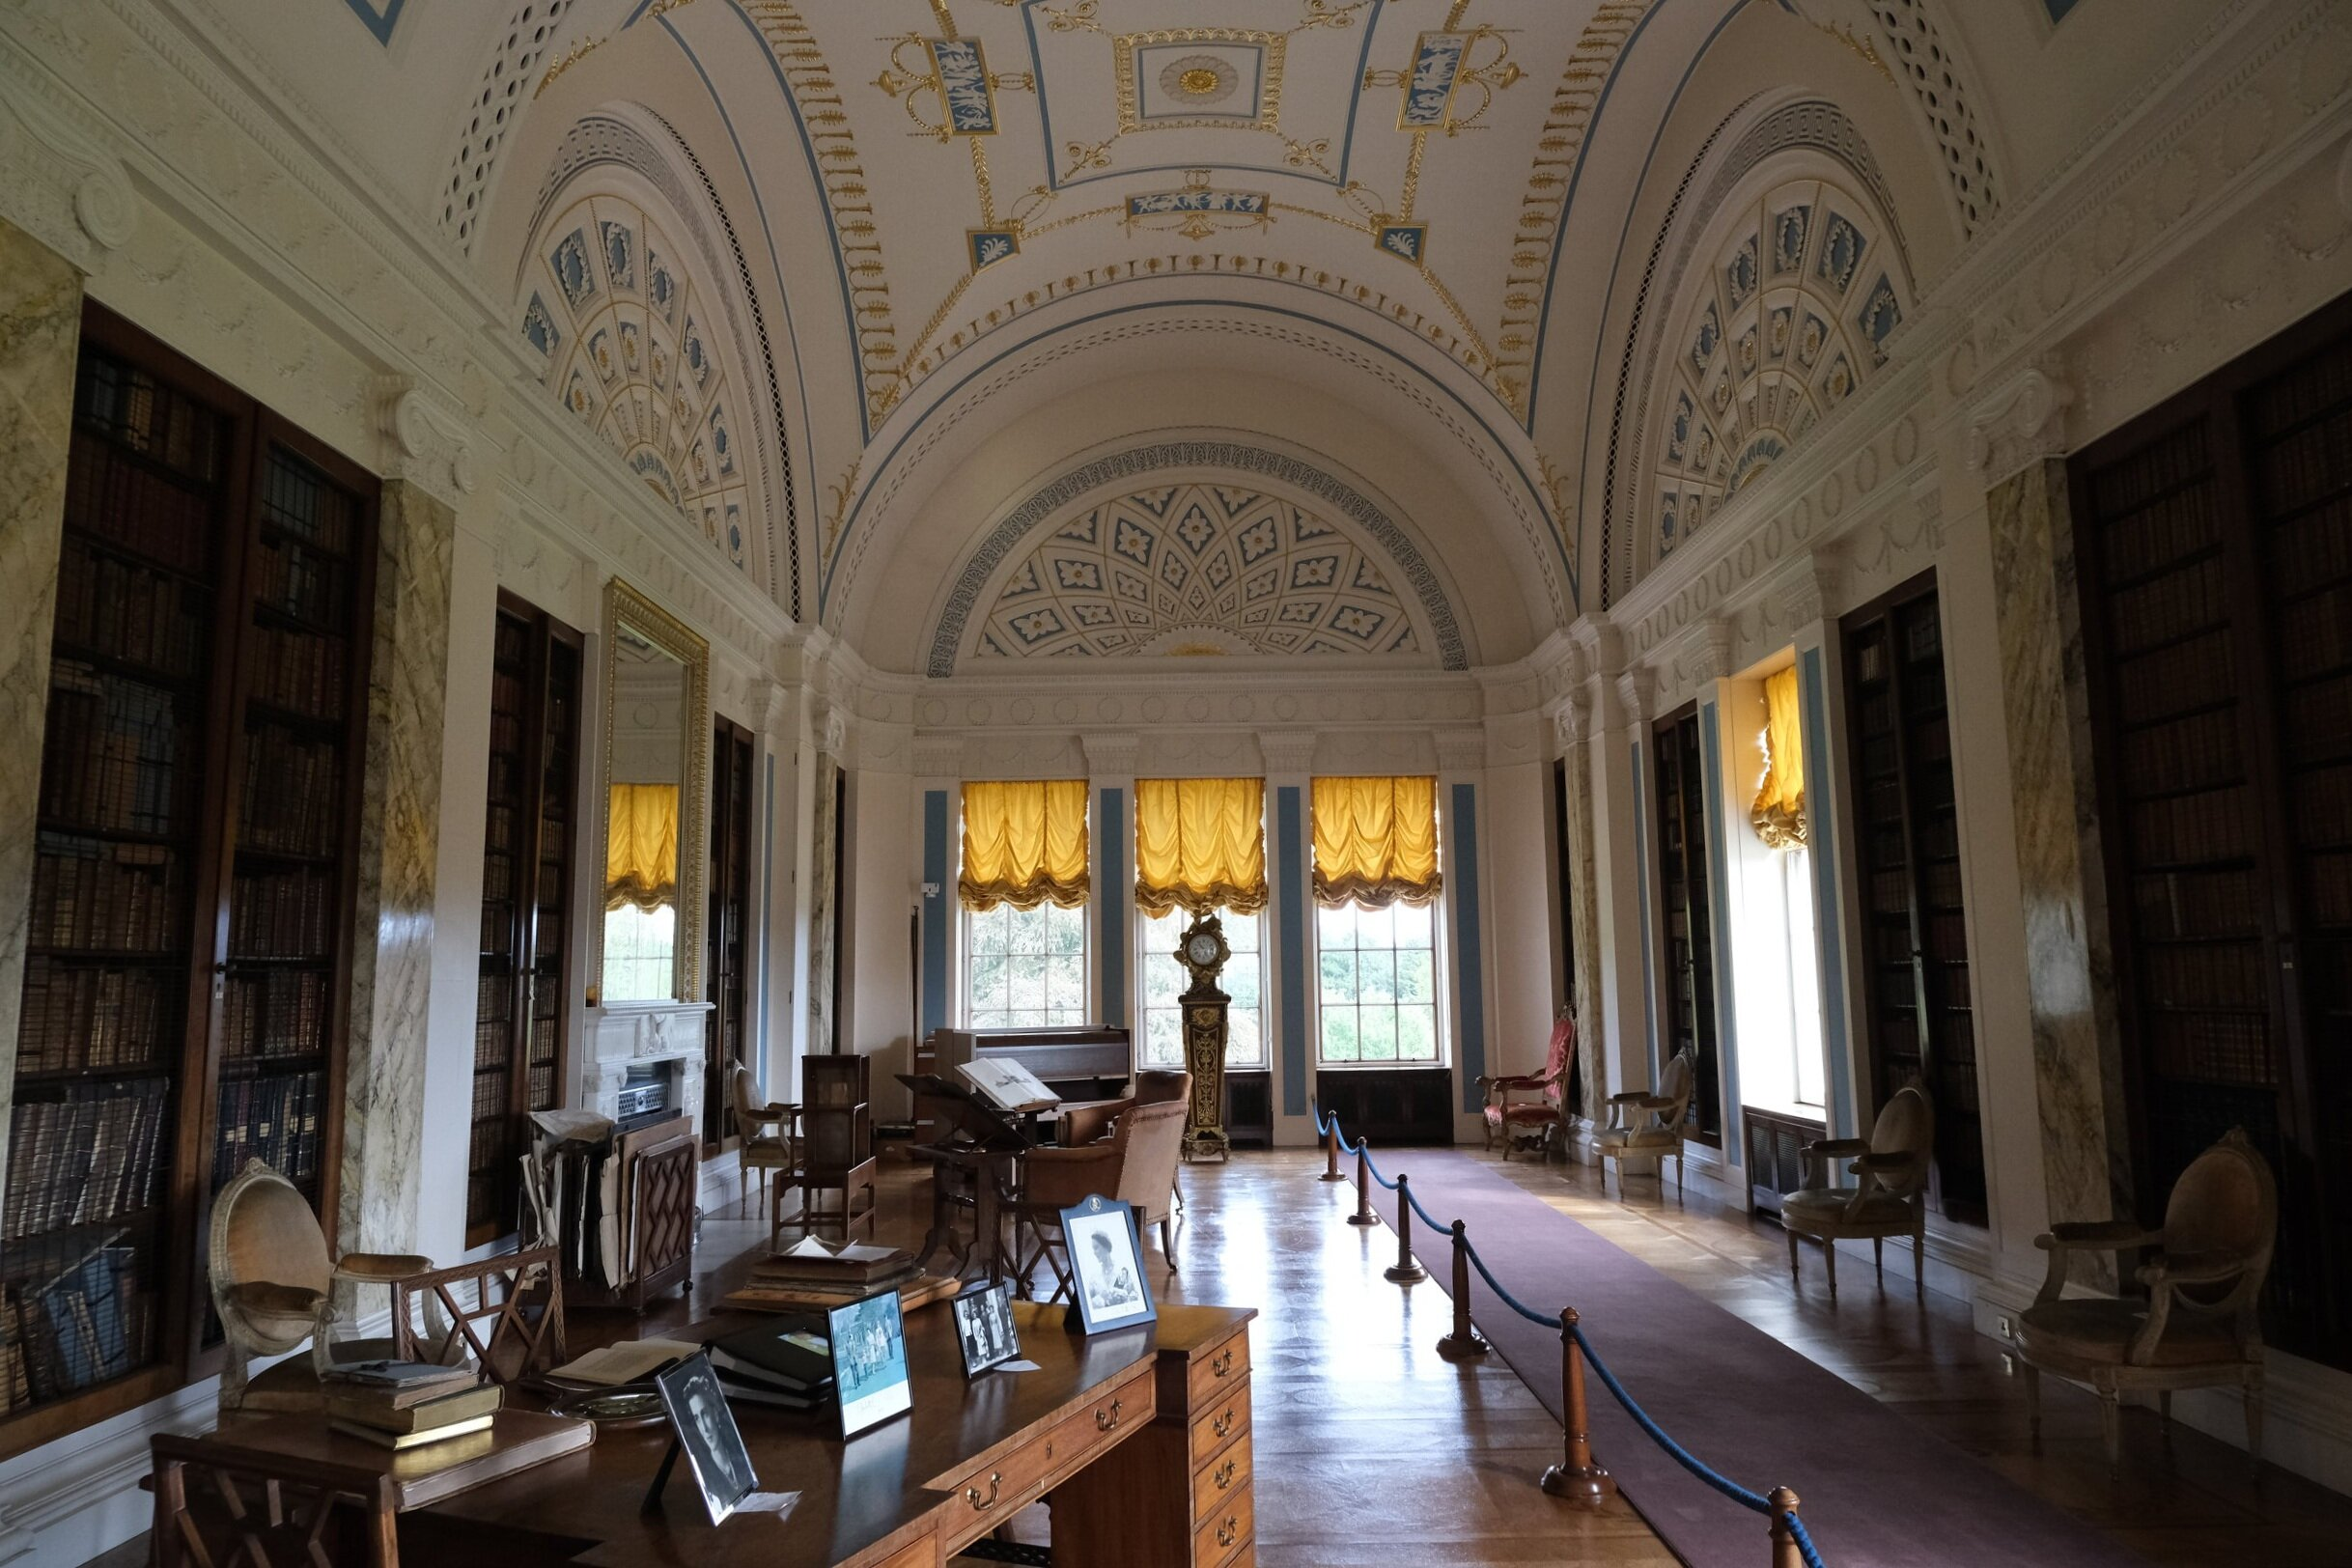 The library at Sledmere House